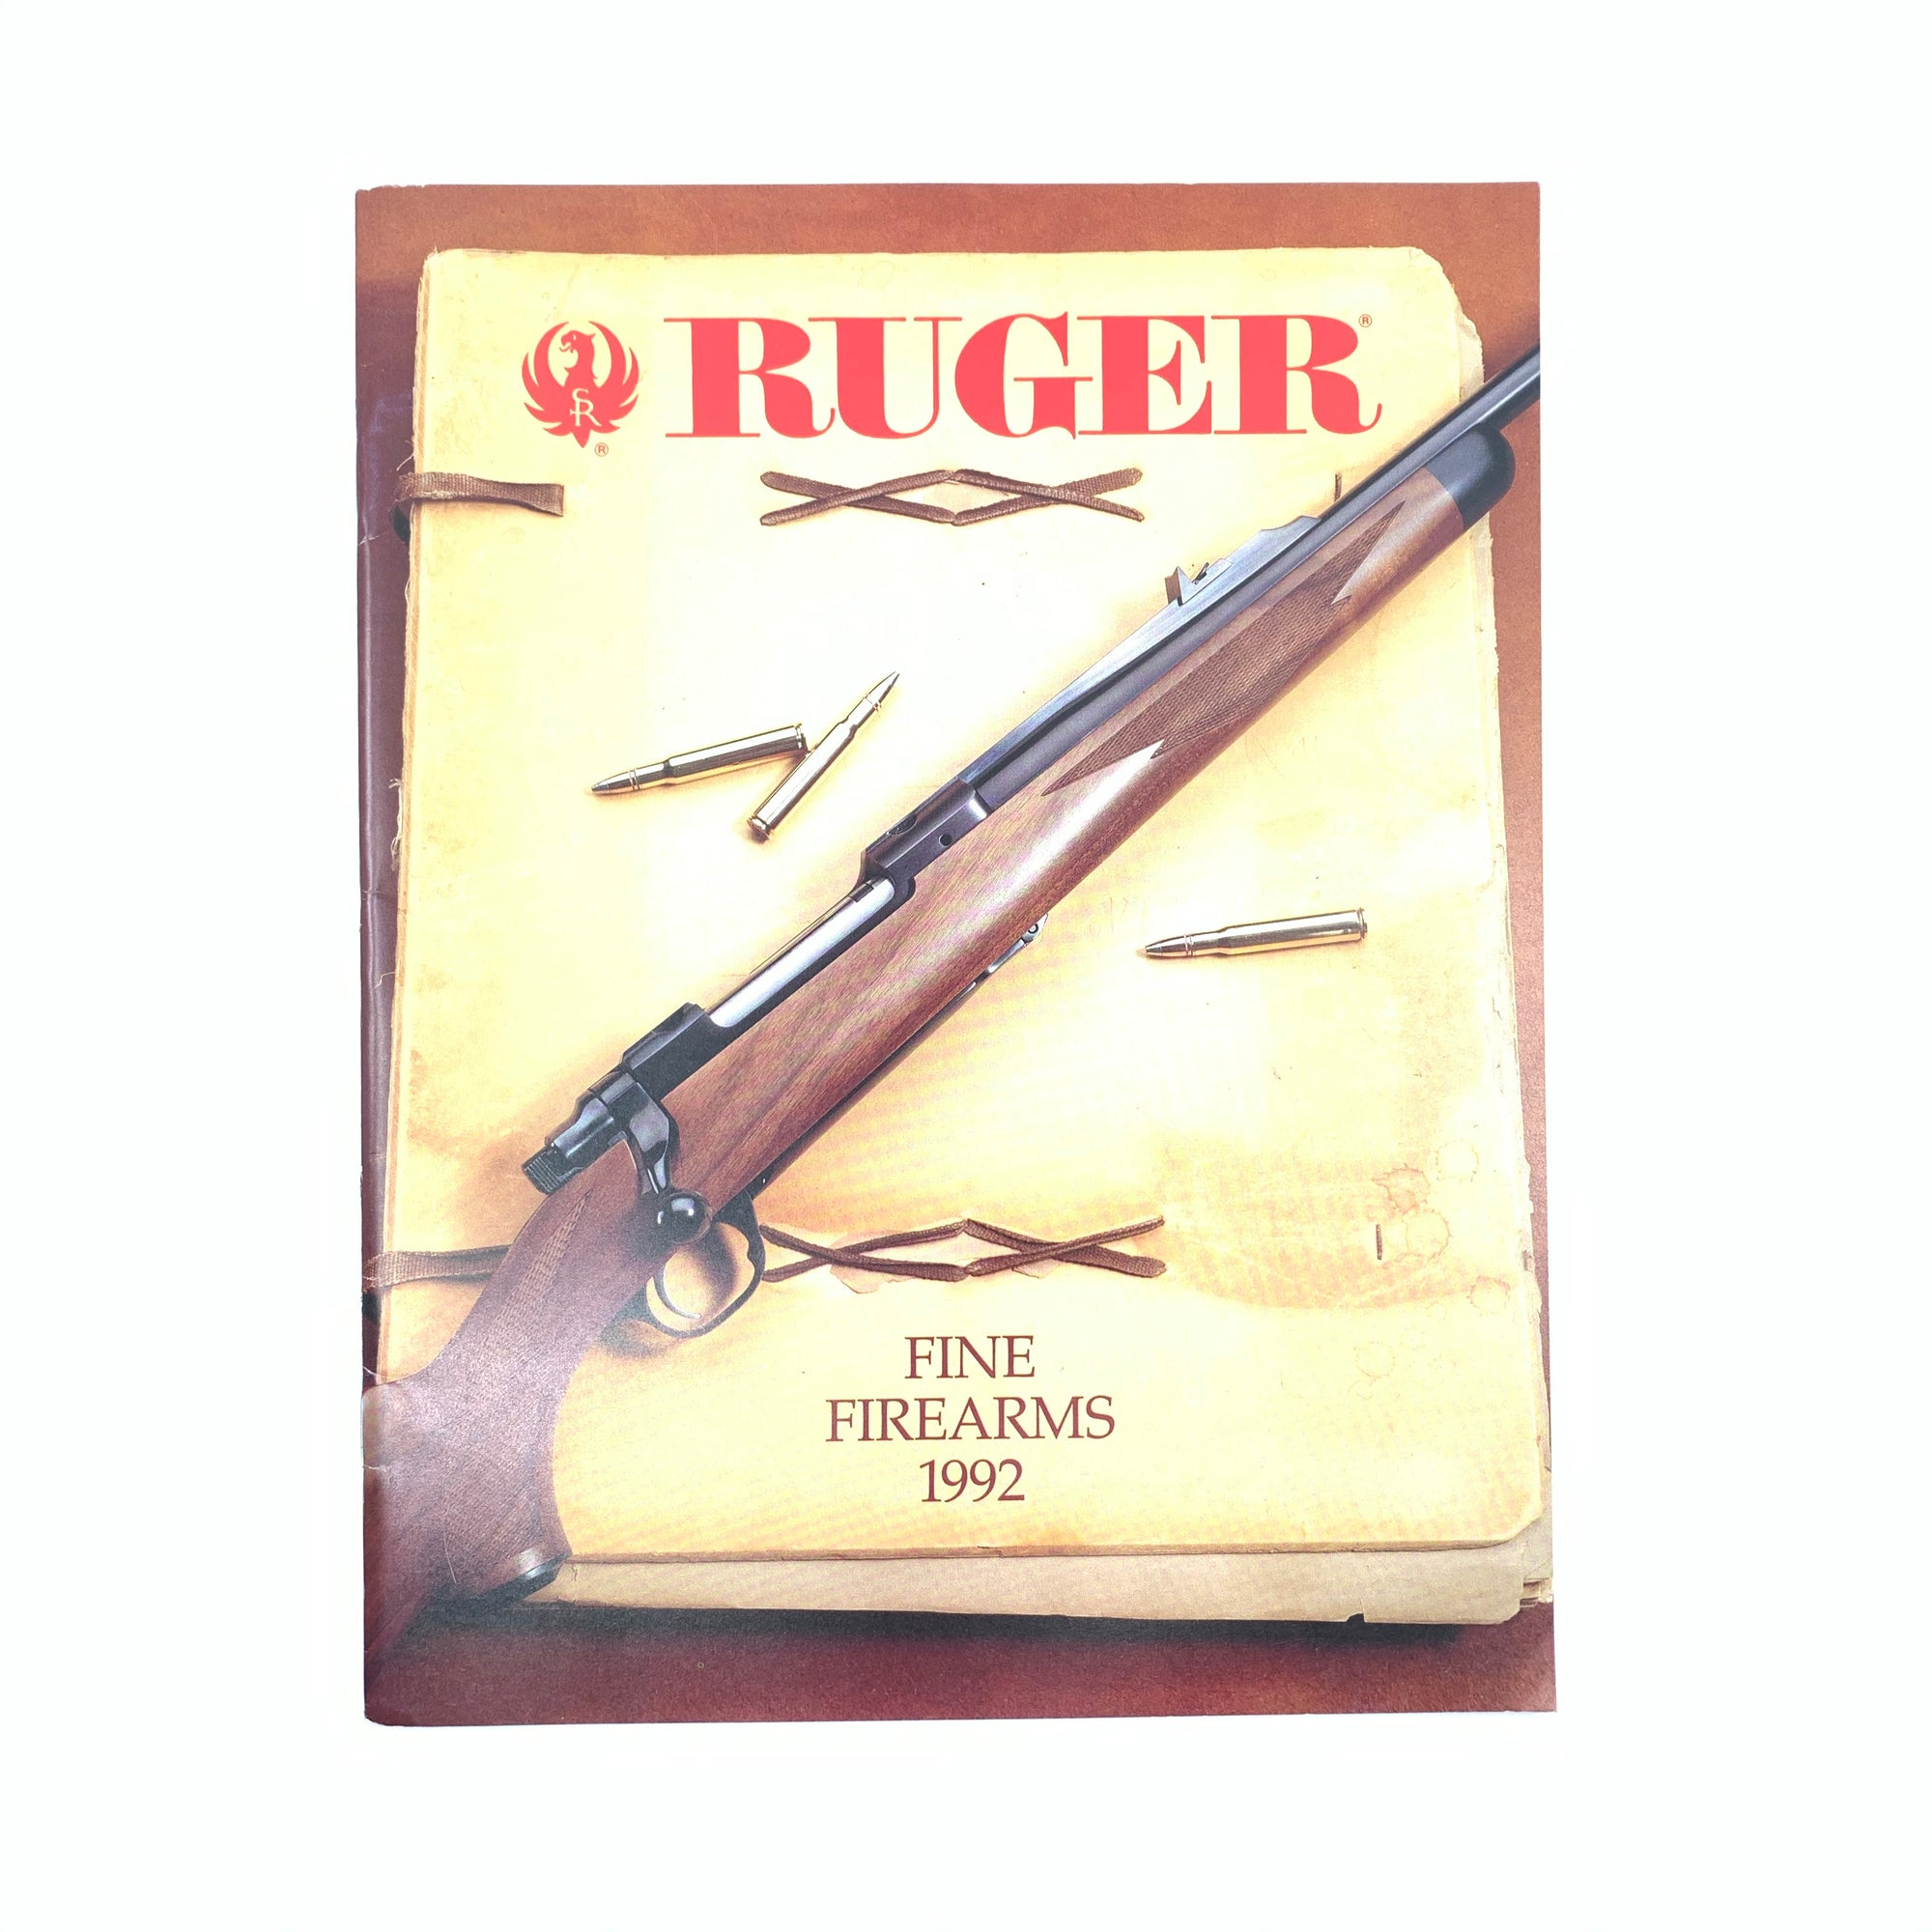 Ruger Fine Firearms Catalogue 1992